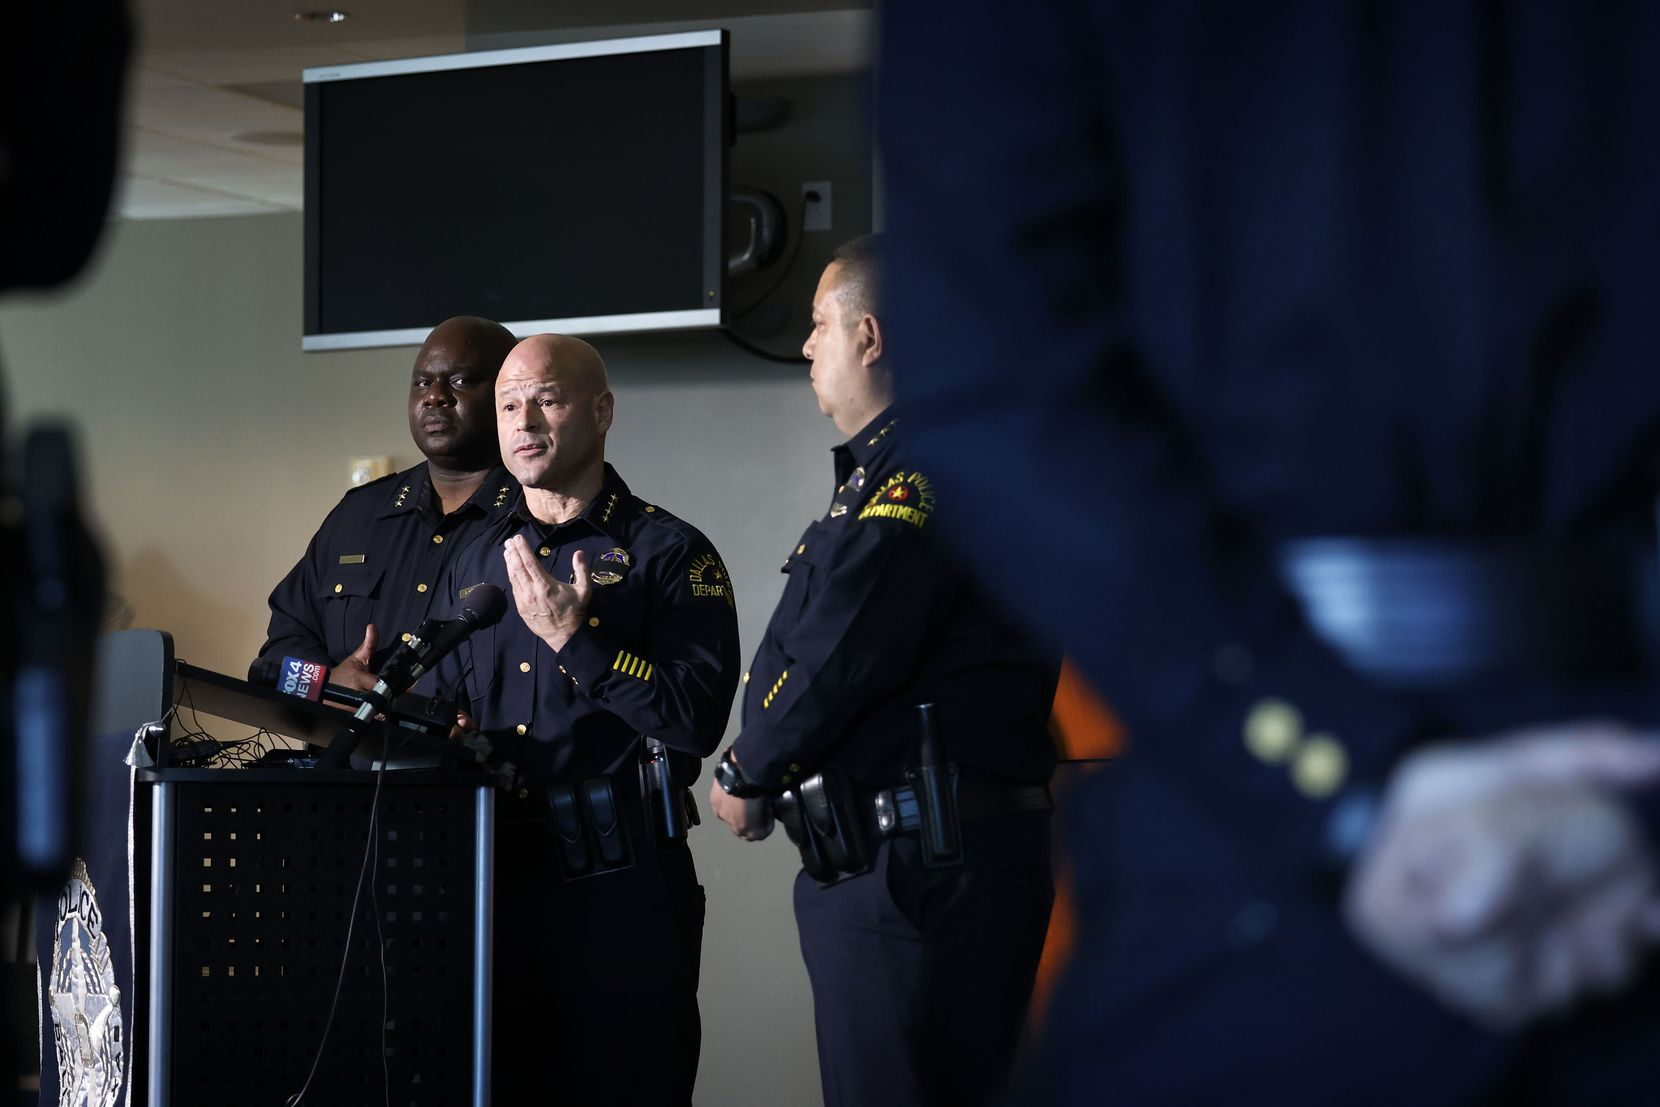 Dallas Police Chief Eddie García responded to media questions about the arrest of Angela West.